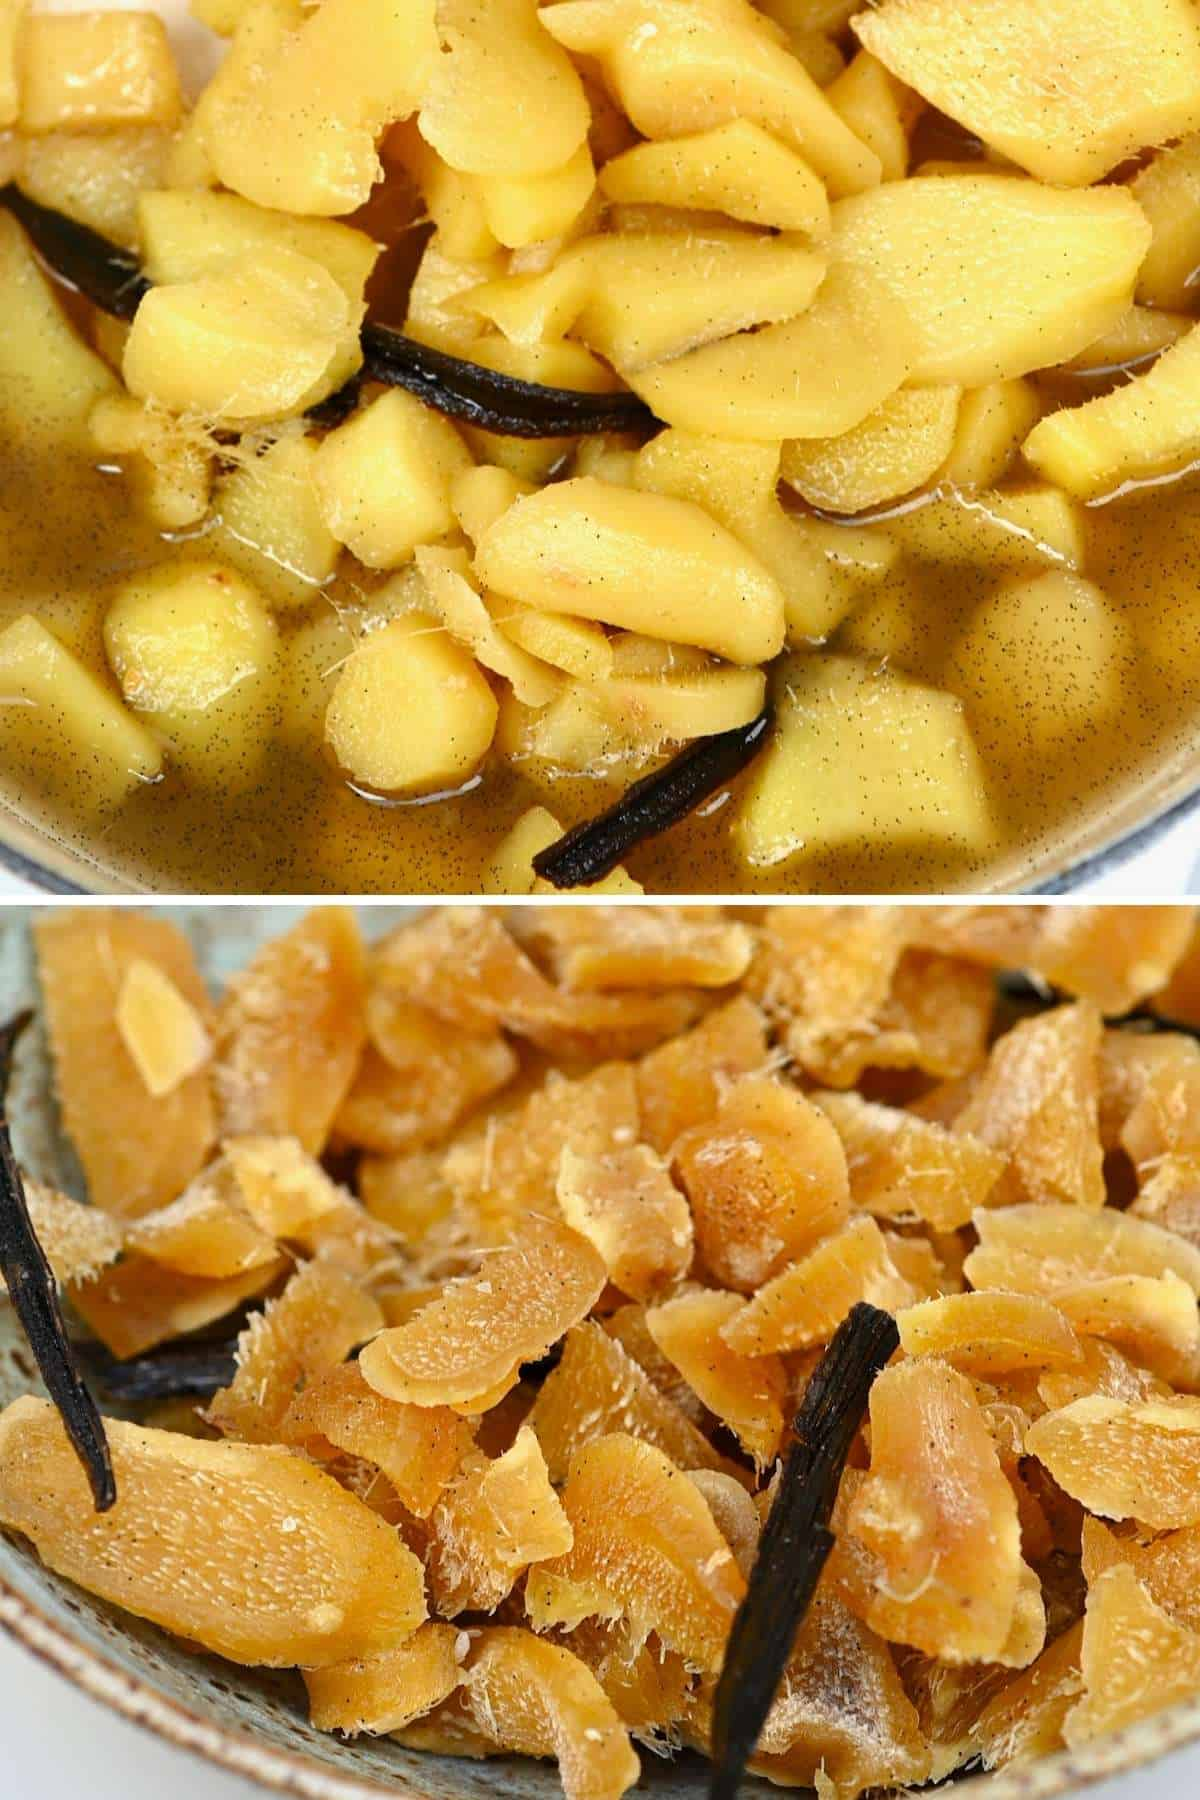 Candied and crystallized ginger